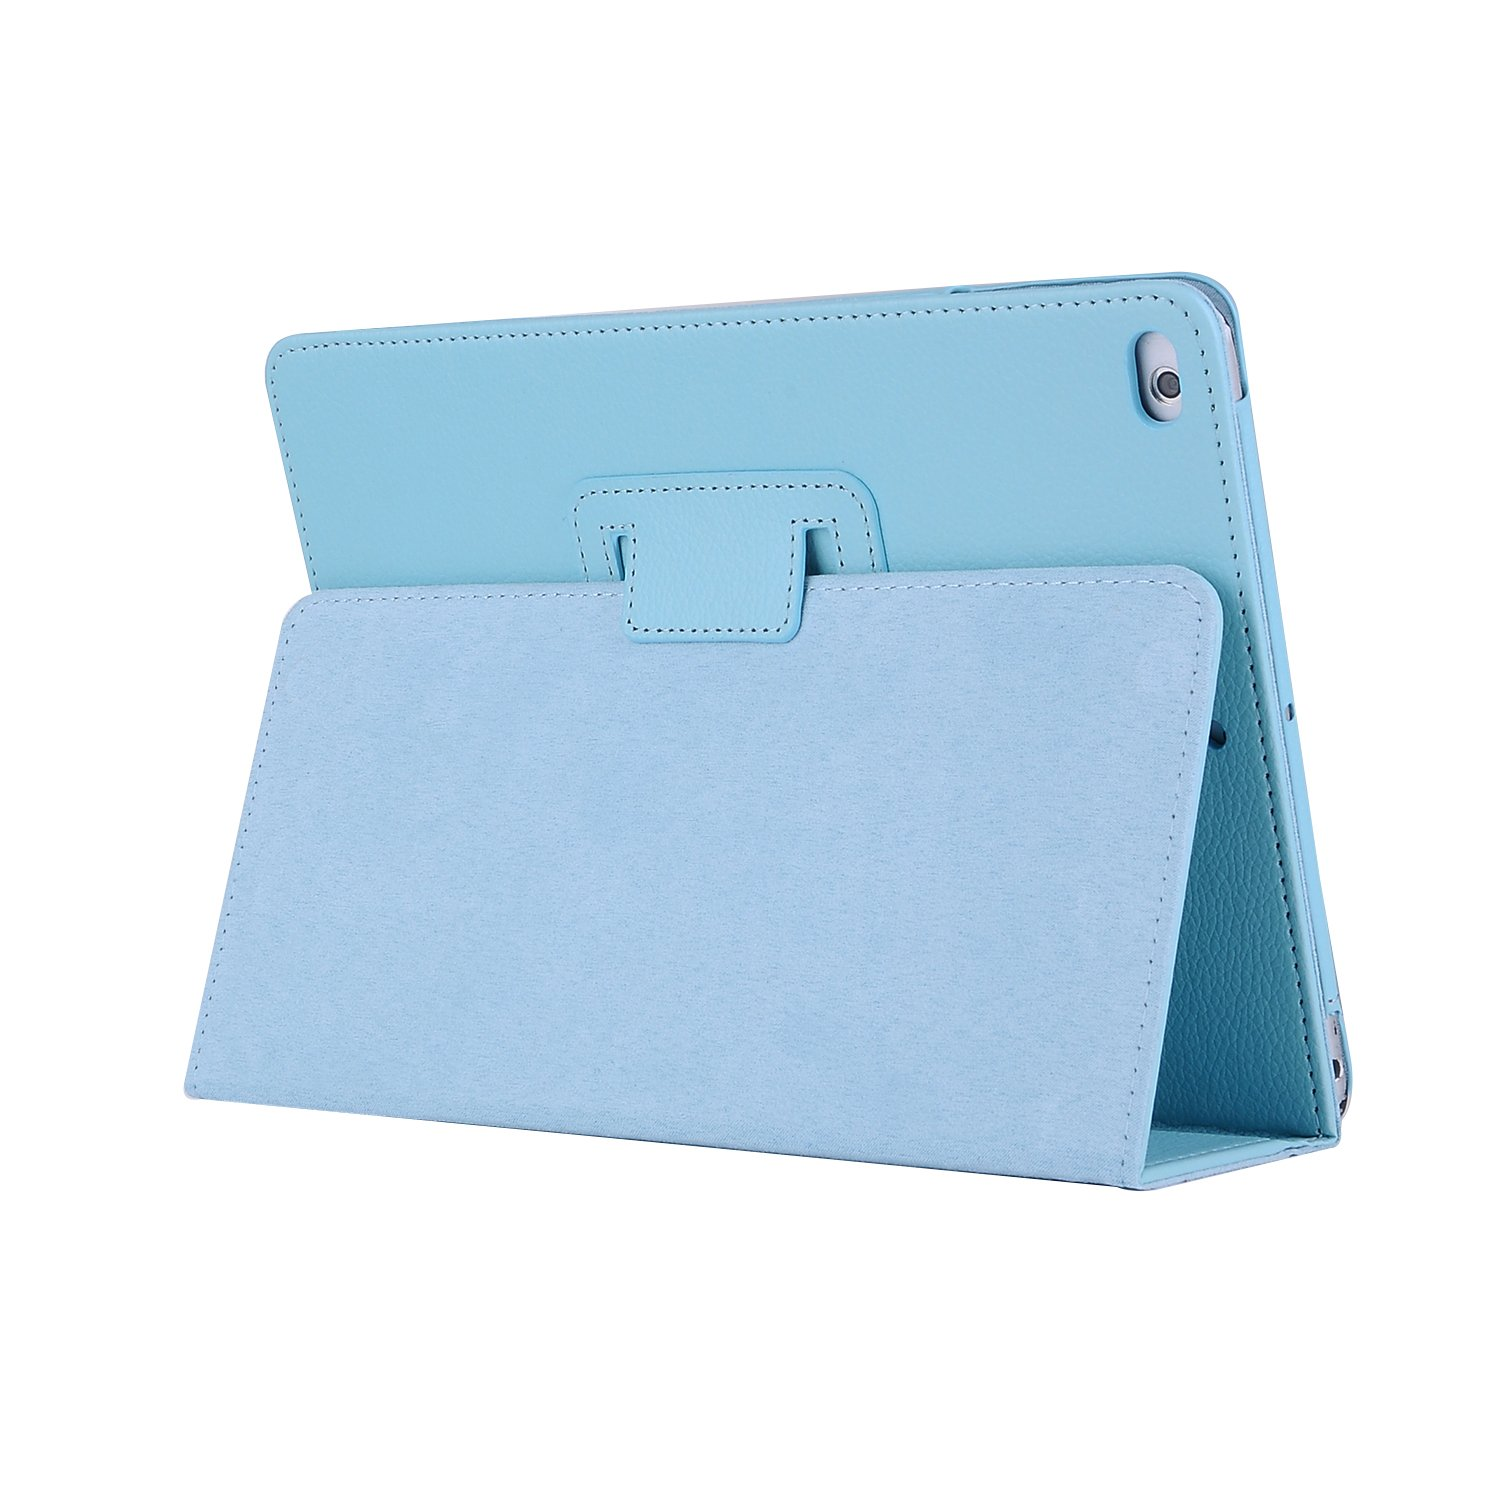 A2232 Case 7th Capa iPad A2197 Funda Cover Foilo-Stand Tablet A2200 for Apple